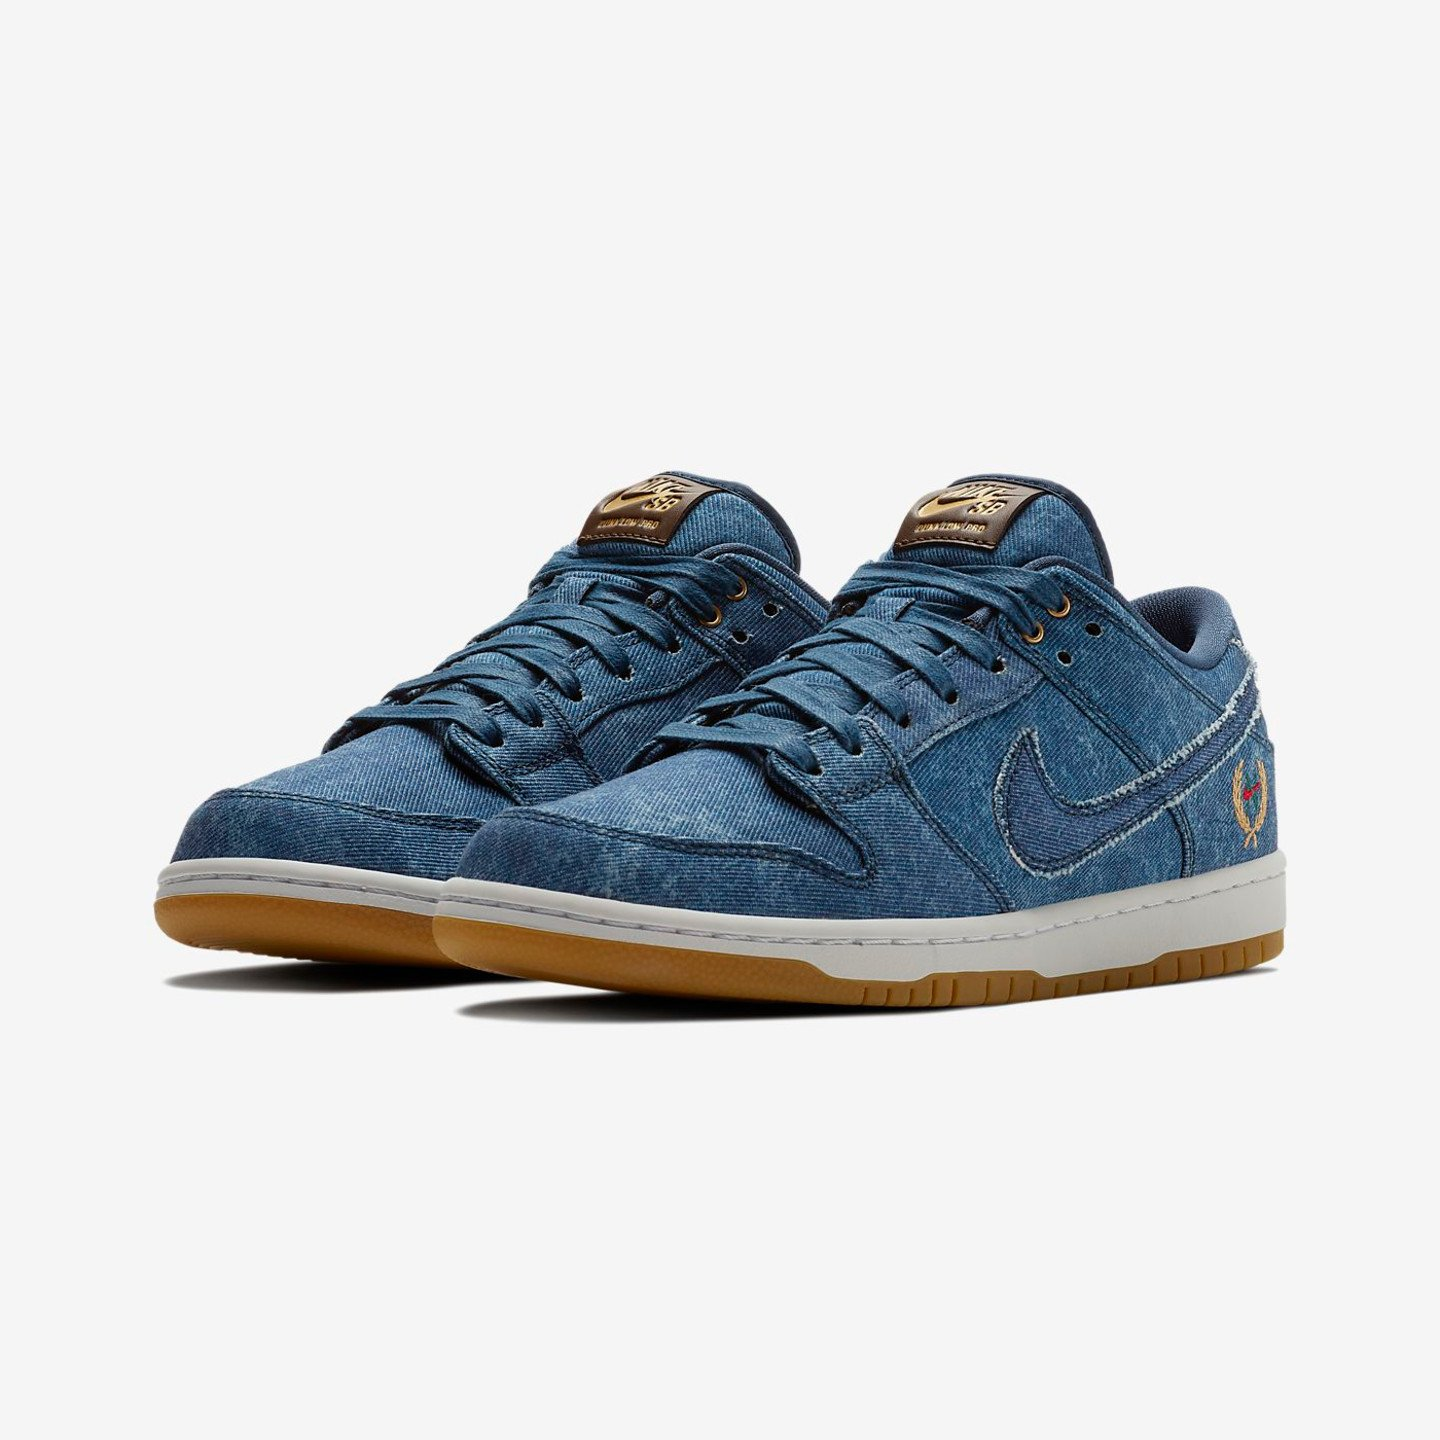 Cereal Reproducir Campeonato  Nike SB Dunk Low TRD QS 'East West Pack' - Utility Blue / White |  883232-441 | 114,95 inkl. MwSt.